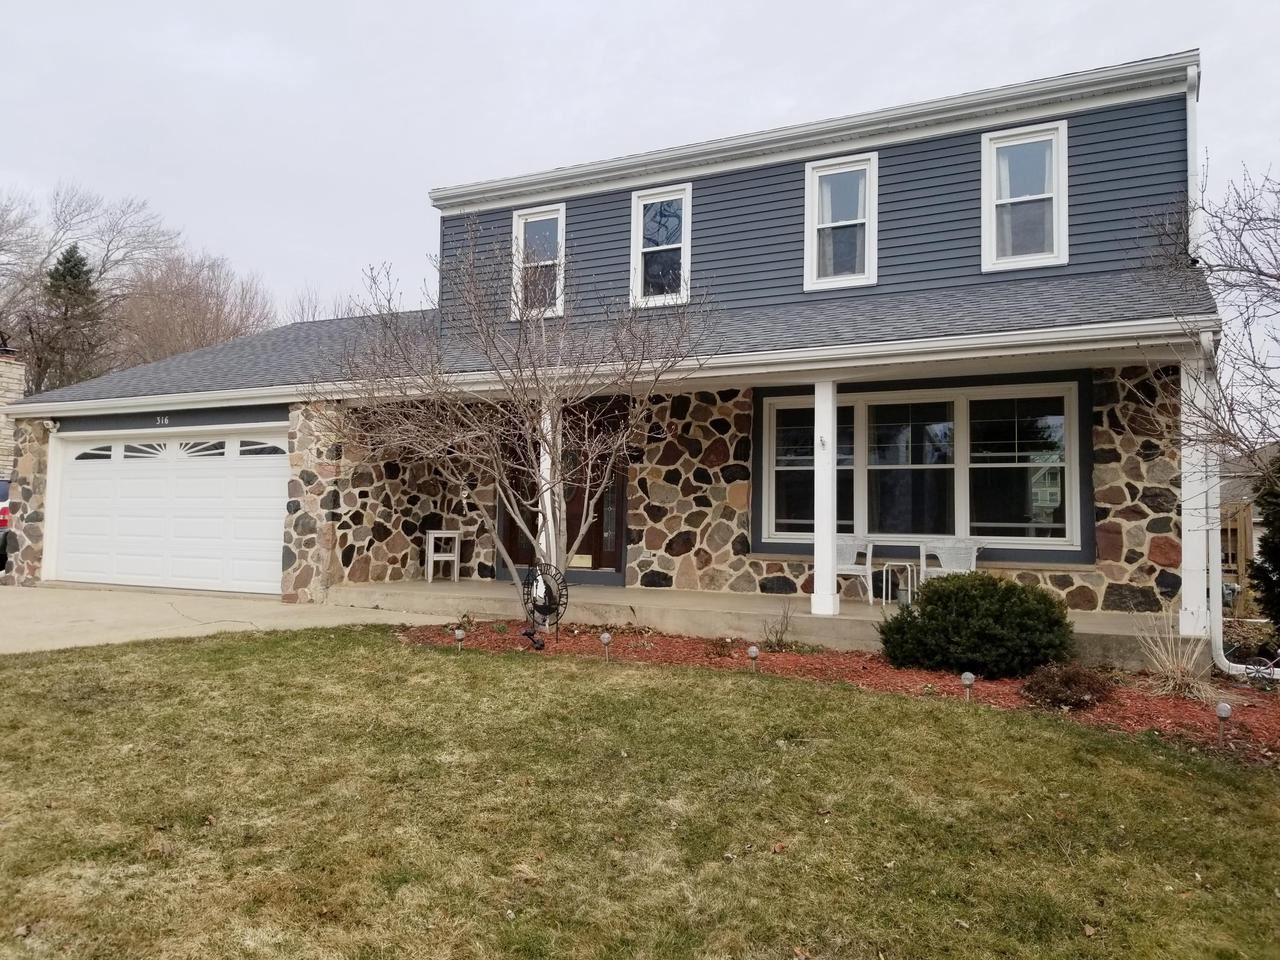 316 Meadow Park Dr, Horicon, WI 53032 - MLS#: 1727745